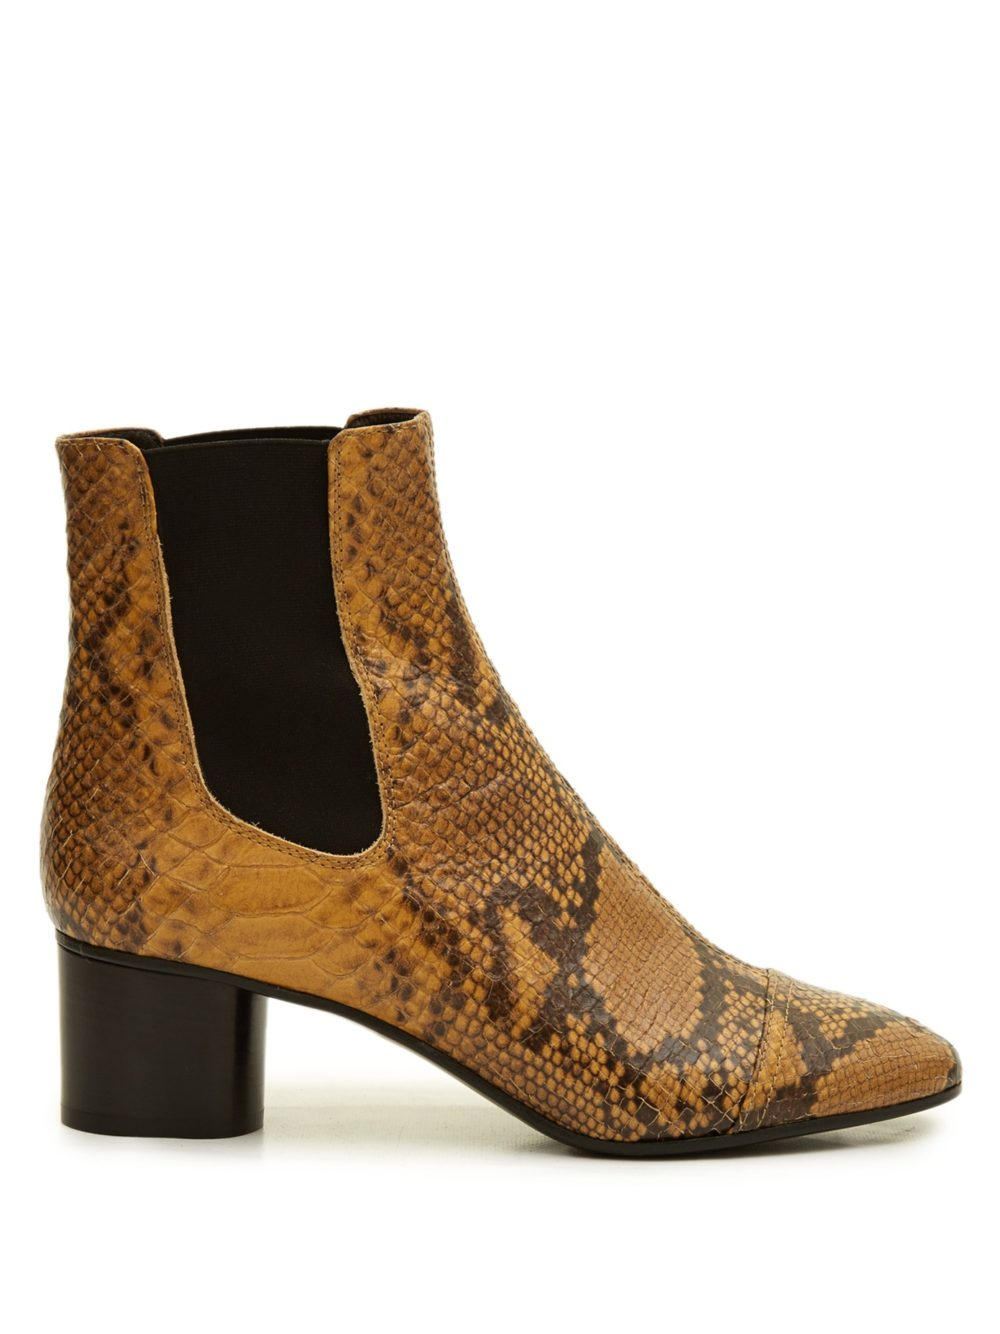 Danae snake-effect leather chelsea boots